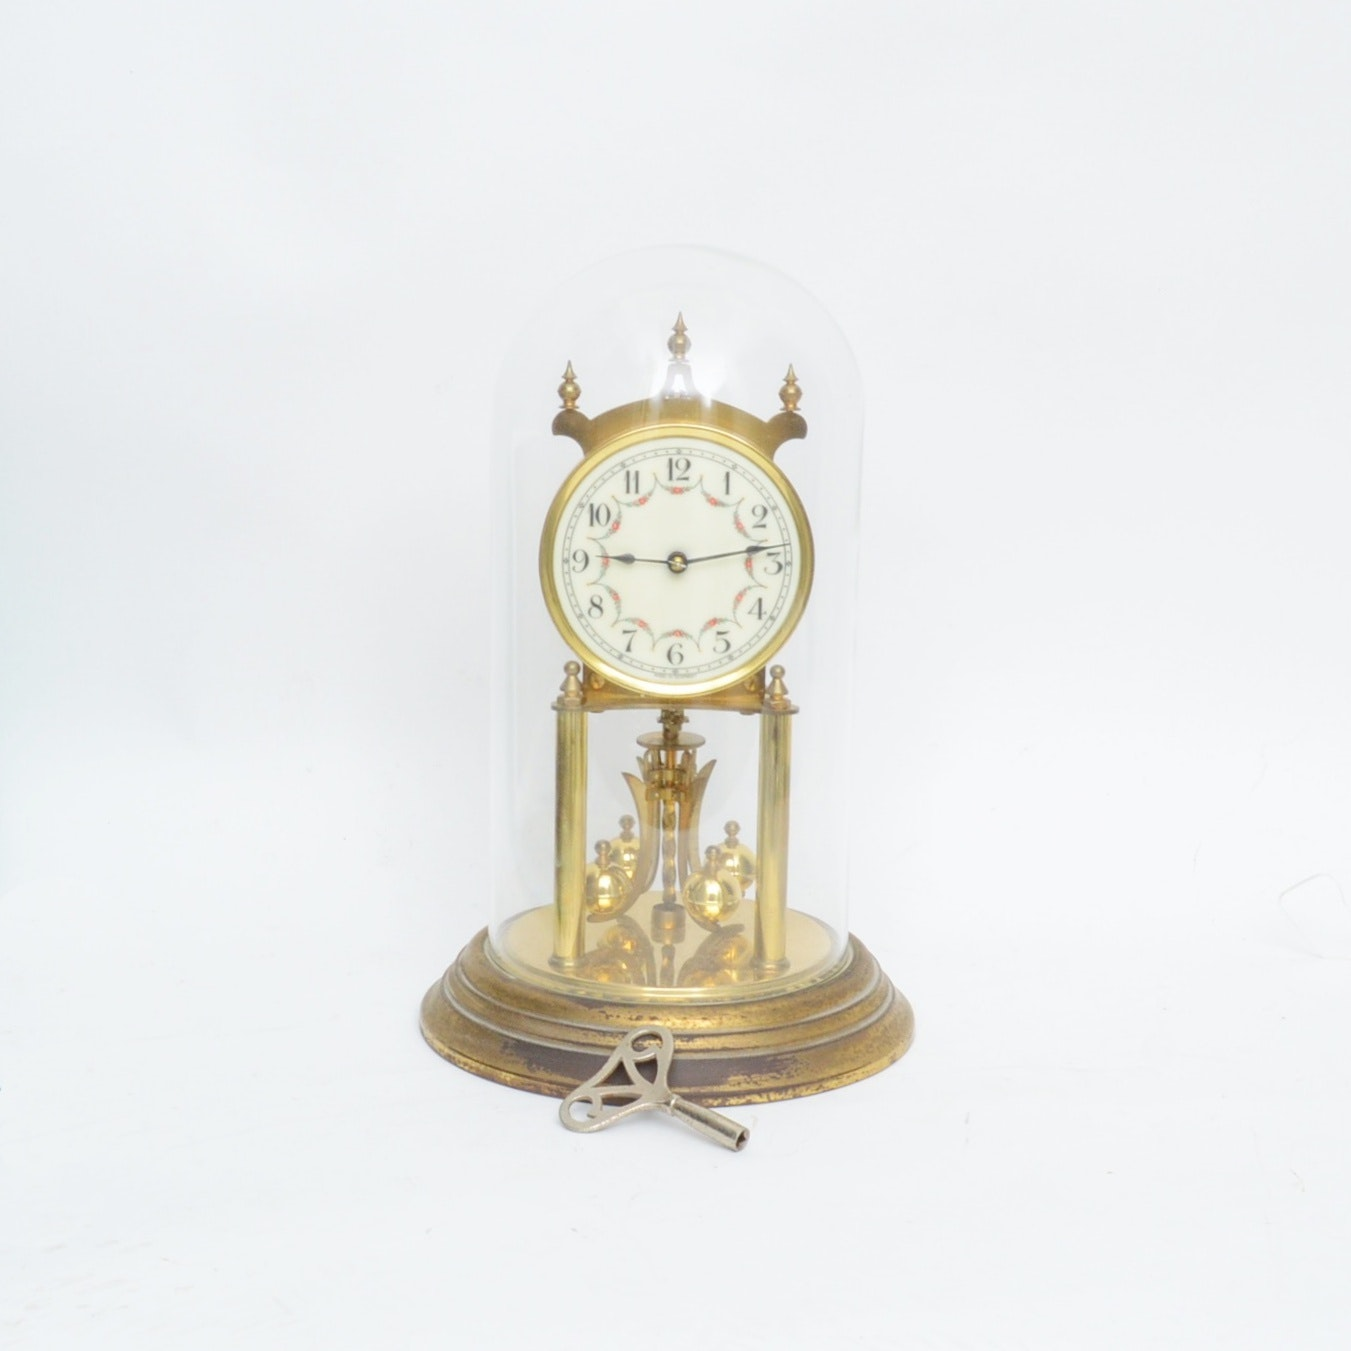 Kieninger and Obergfell German Anniversary Clock